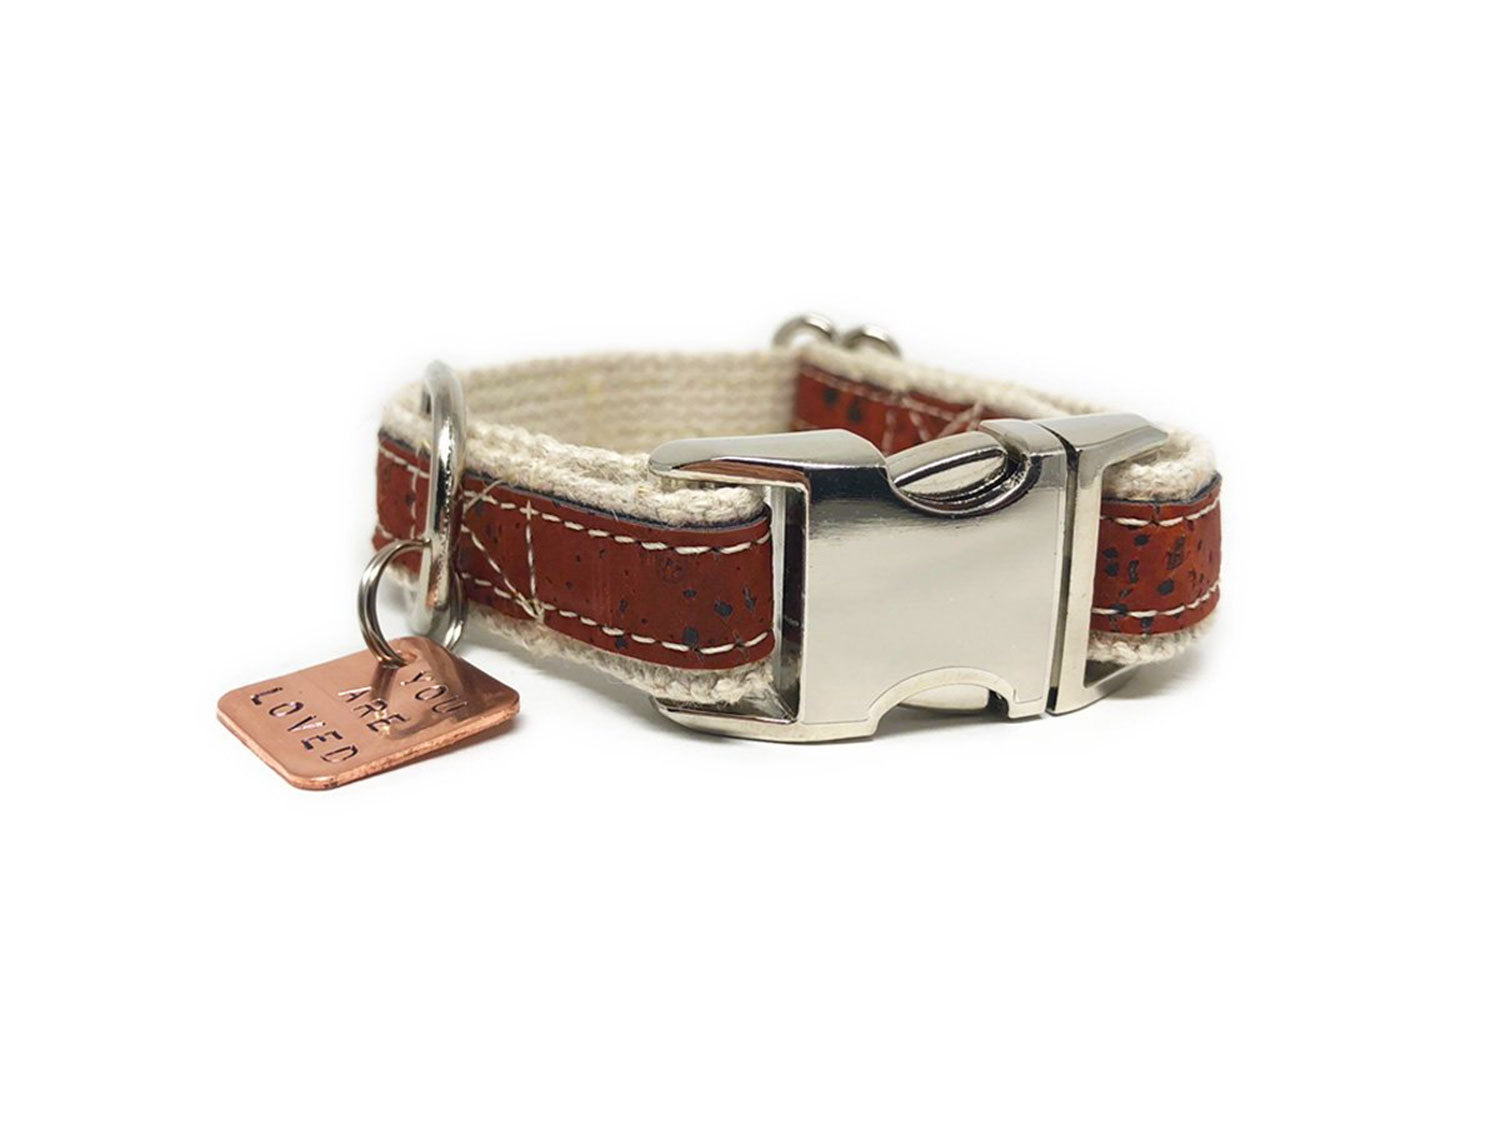 Lil' Adventurer Cork Leather Hemp Small Dog Collar in Red